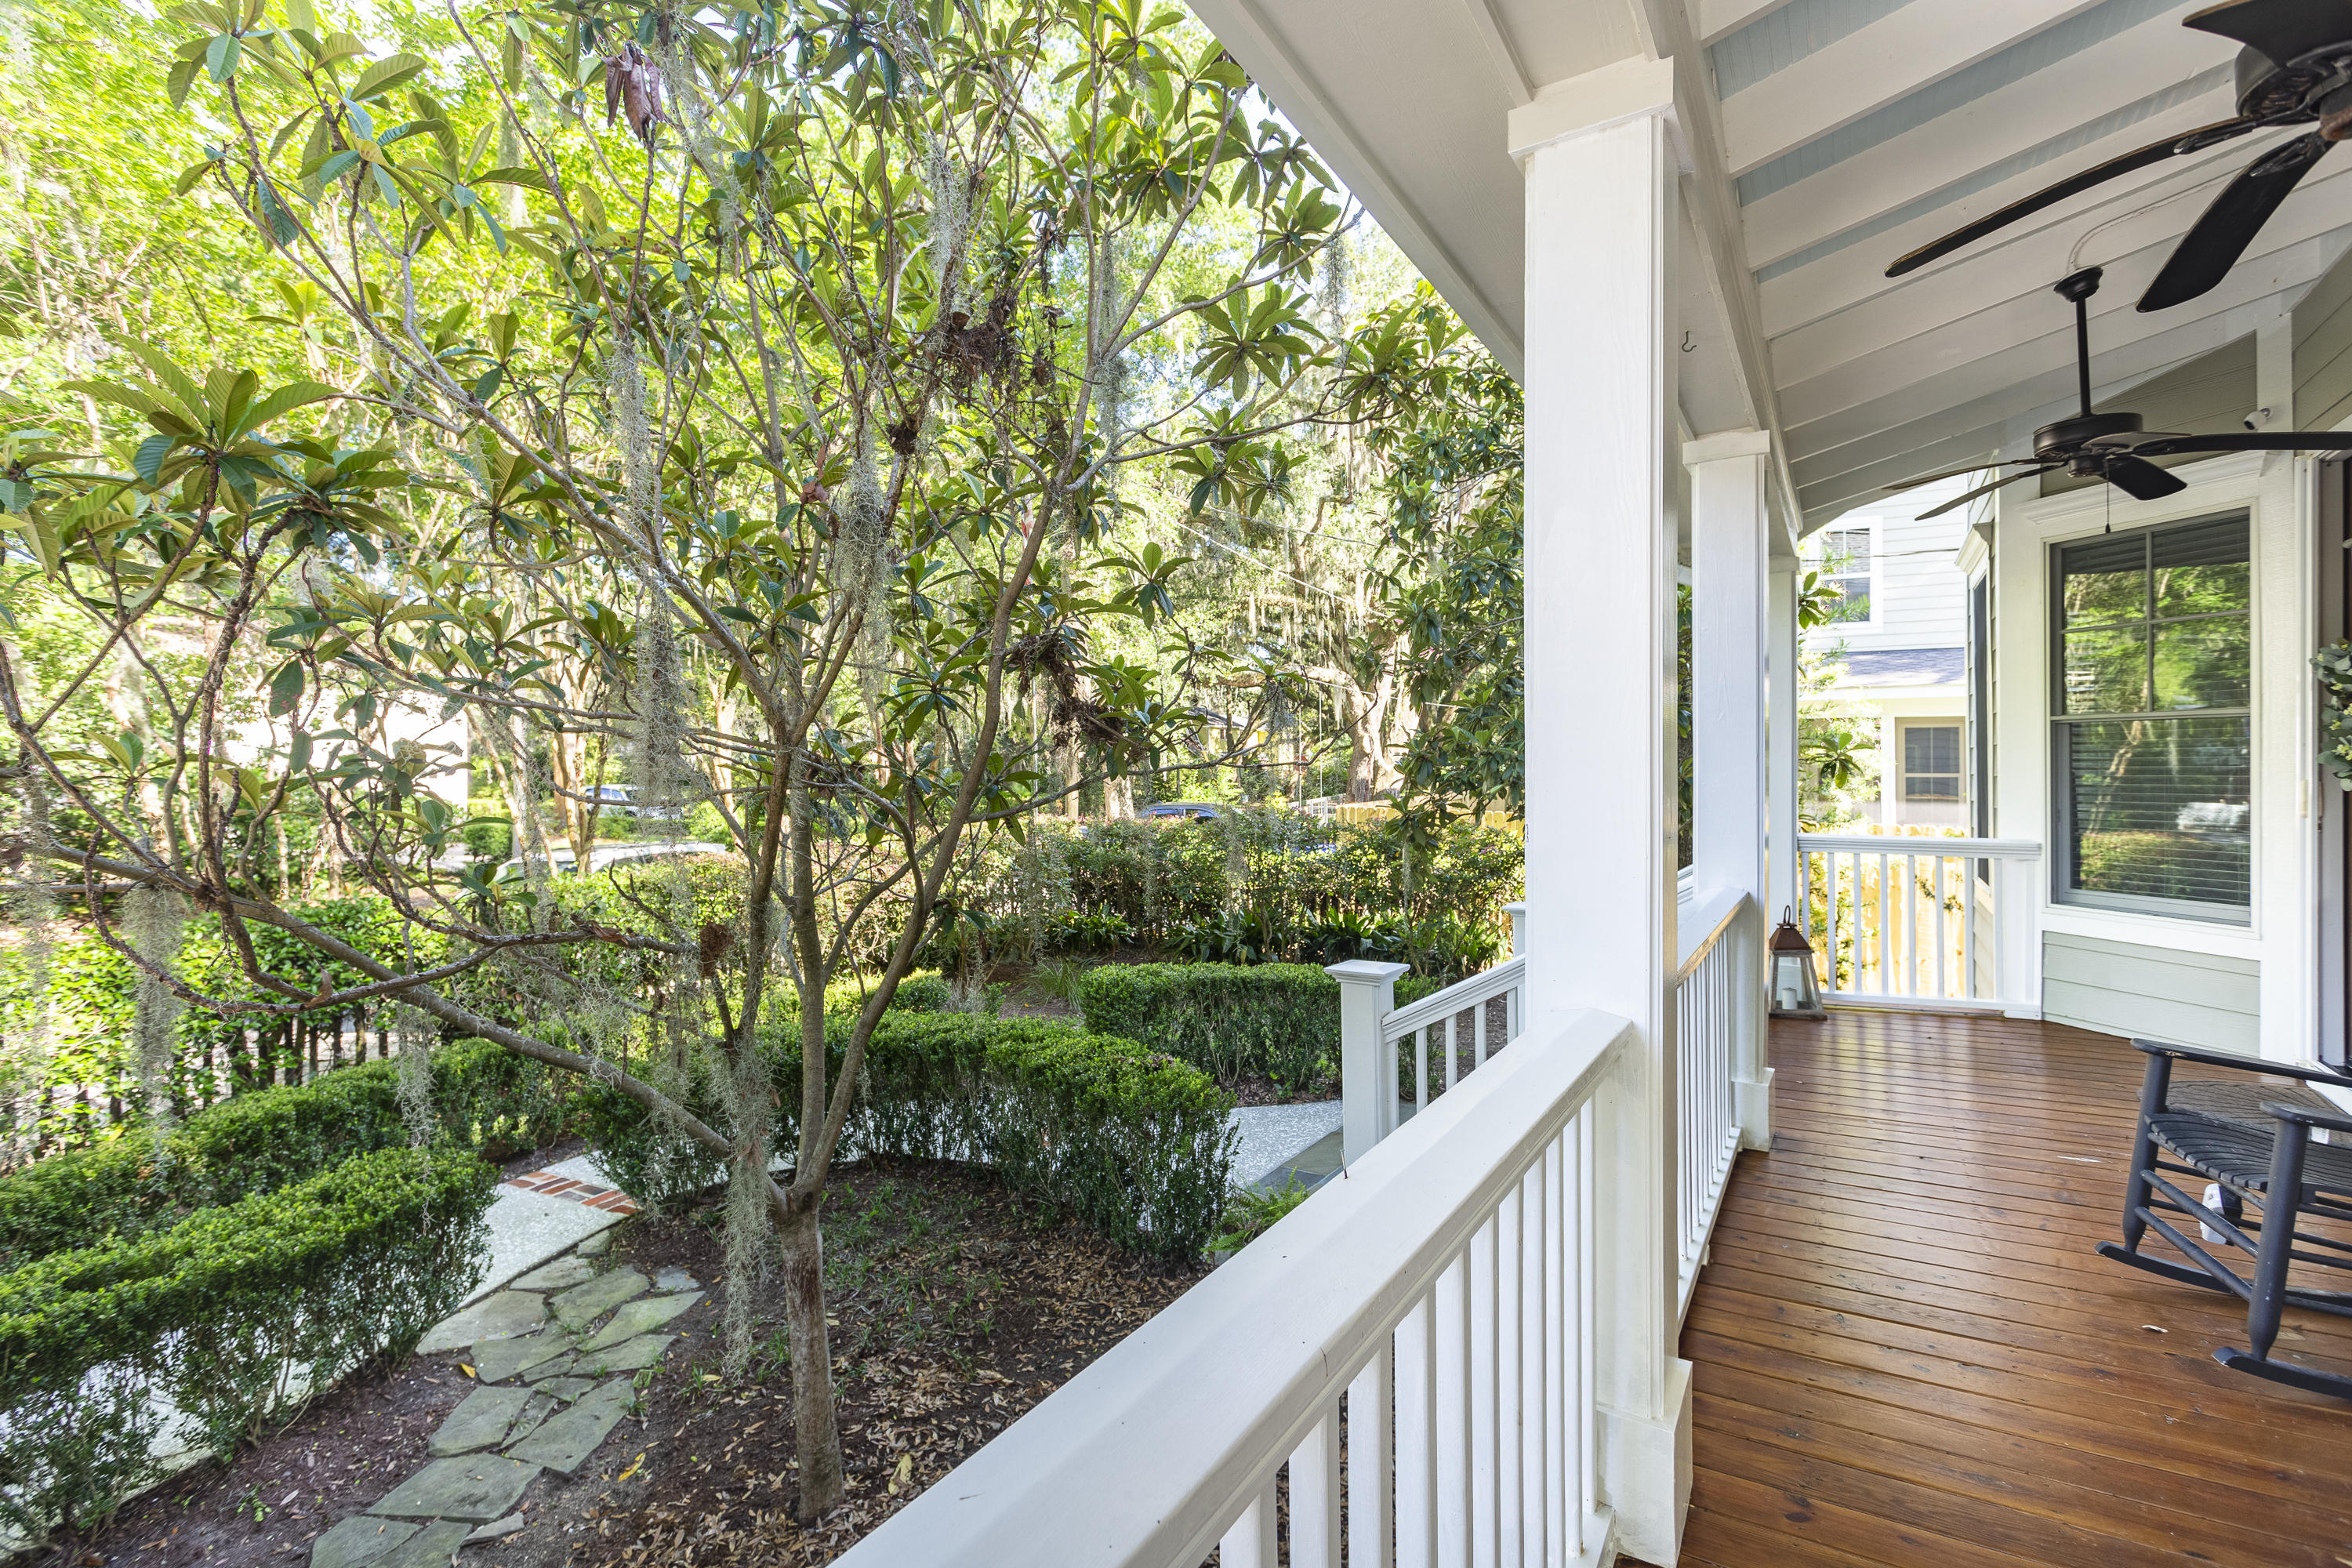 Riverland Terrace Homes For Sale - 179 Riverland, Charleston, SC - 9